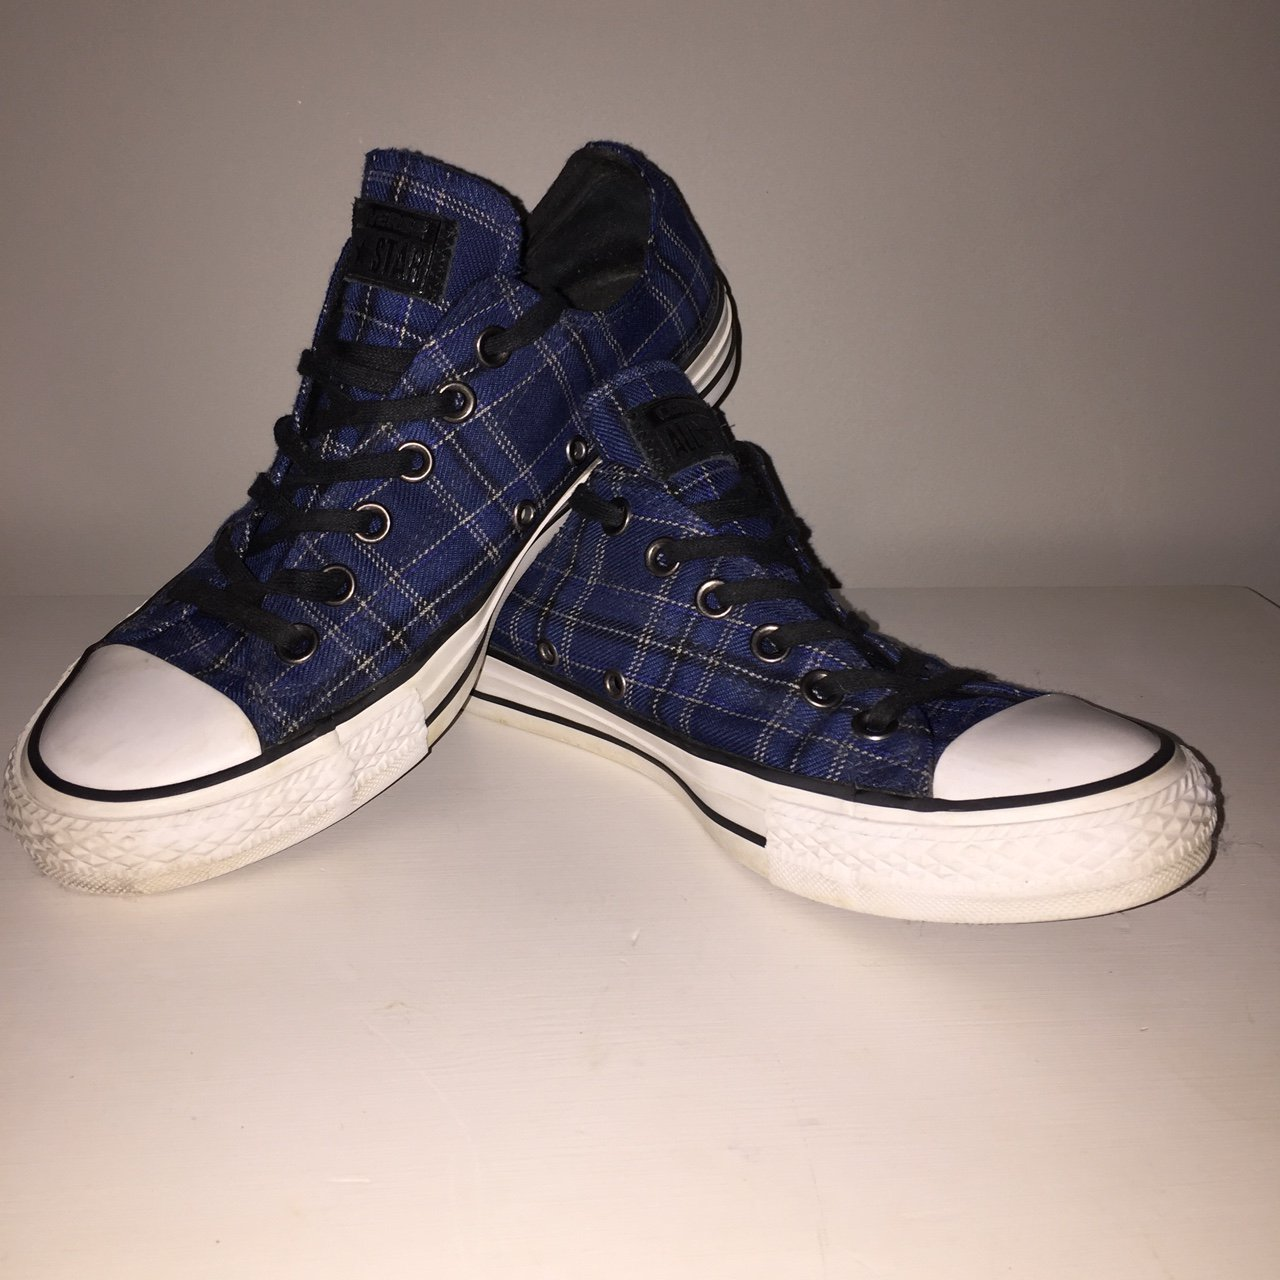 a389601a095 Blue and black chequered REAL converse shoe